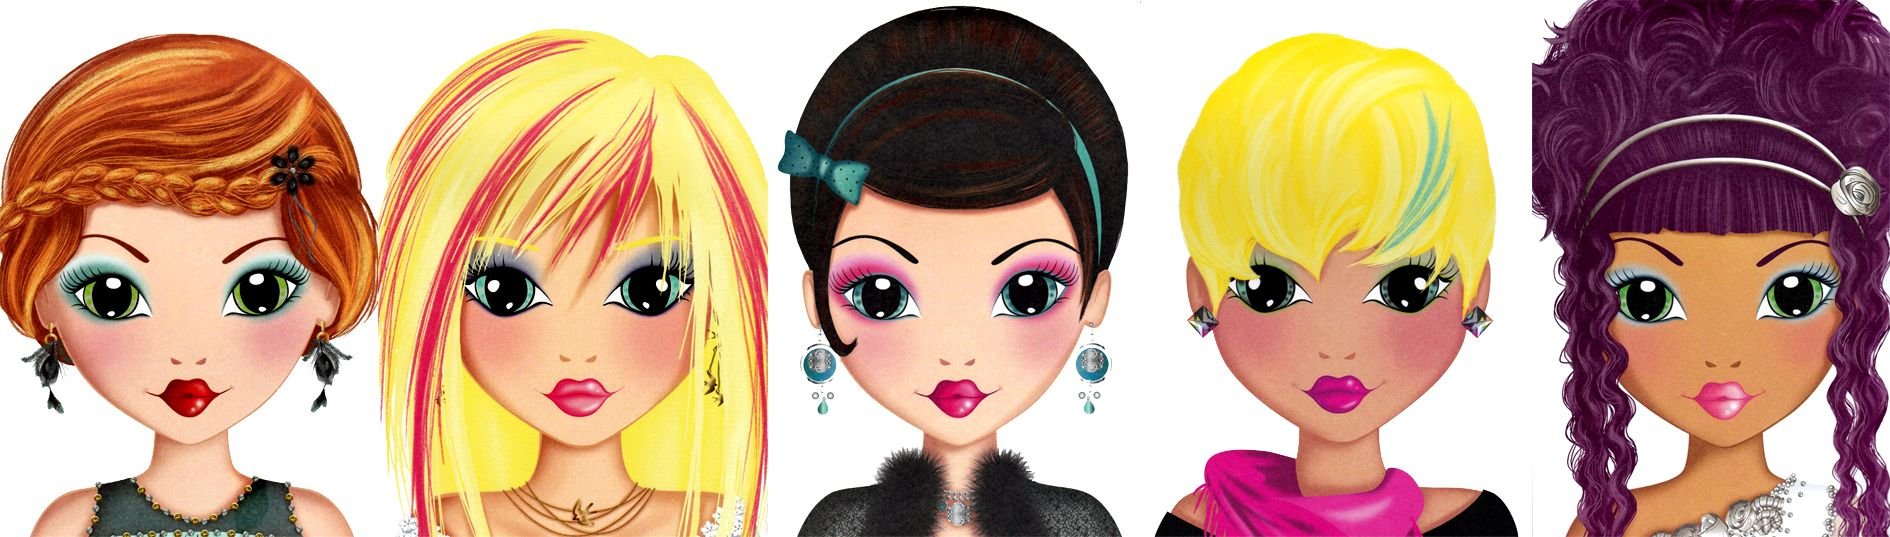 Find this Pin and more on top model biz by tokidoki23